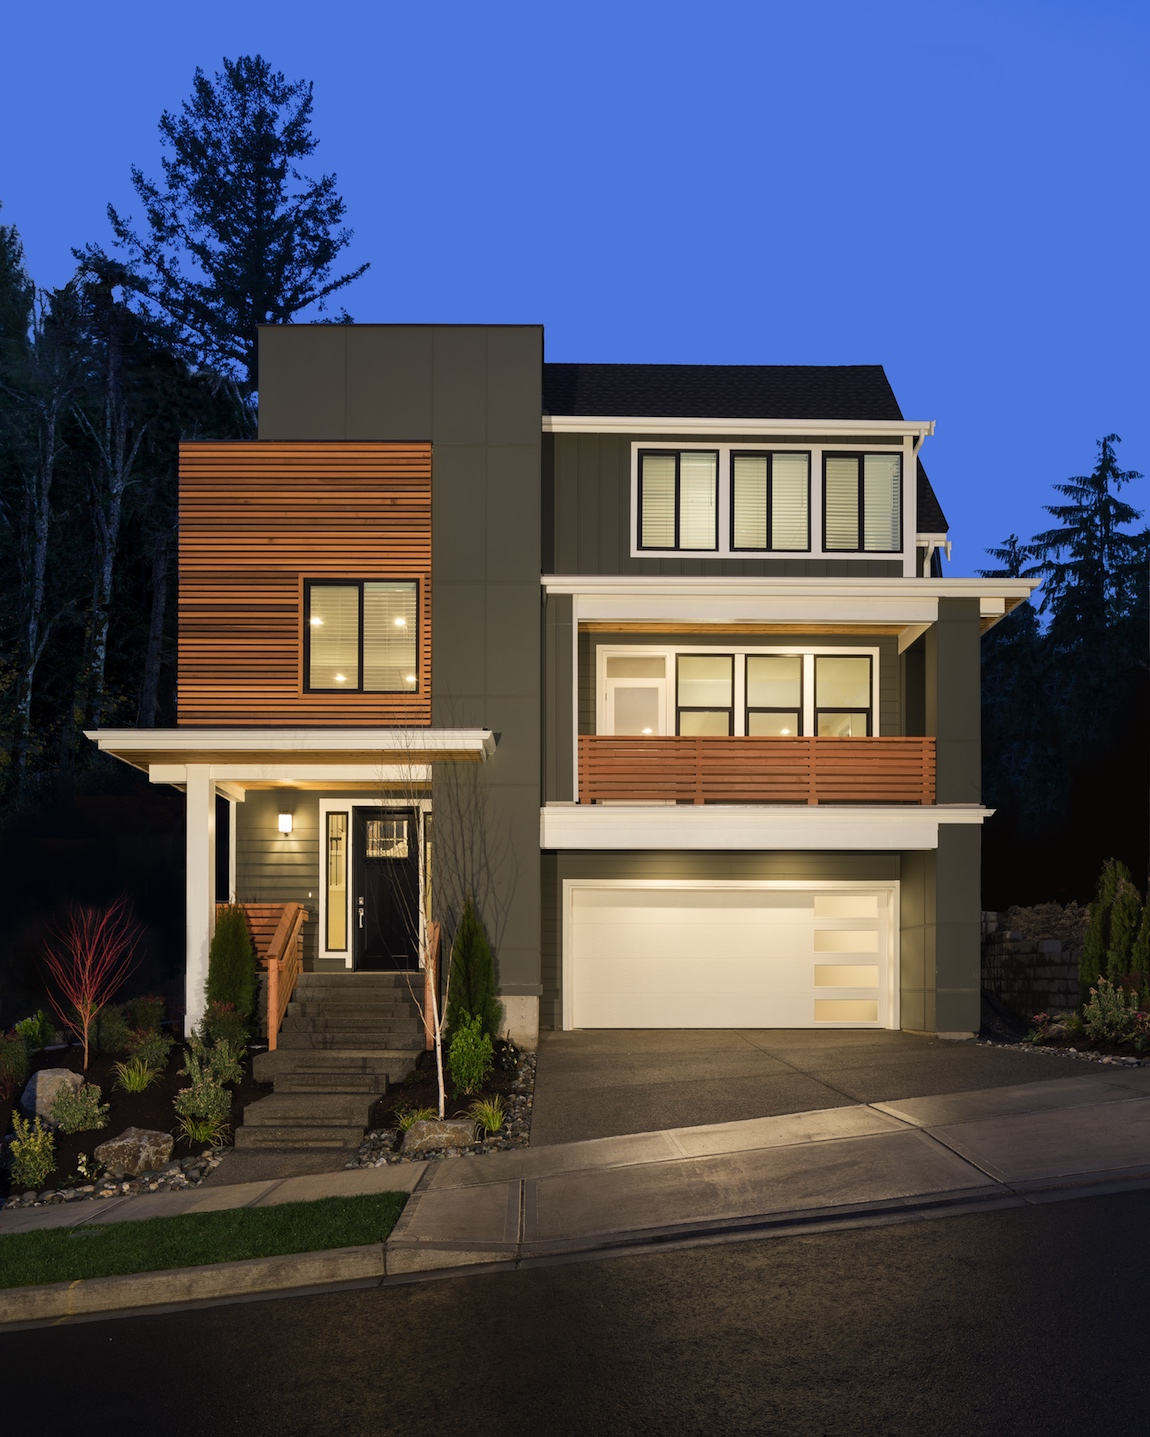 A modern design home with a dark green exterior and natural wood shiplap.